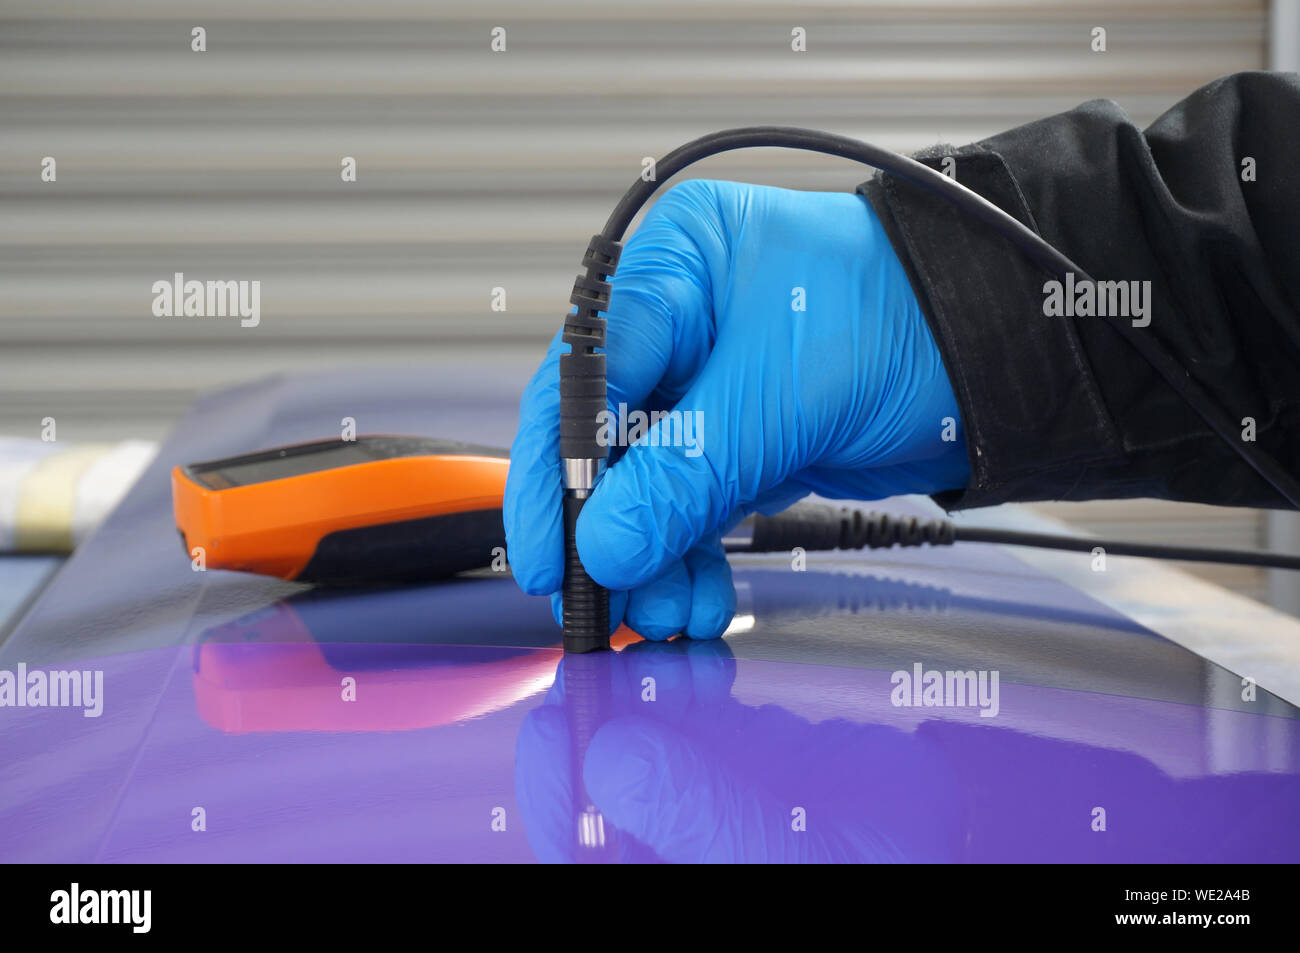 Person using probe, with digital tester, to measure the paint thickness microns on a painted metal panel. Person wearing protective gloves. Stock Photo